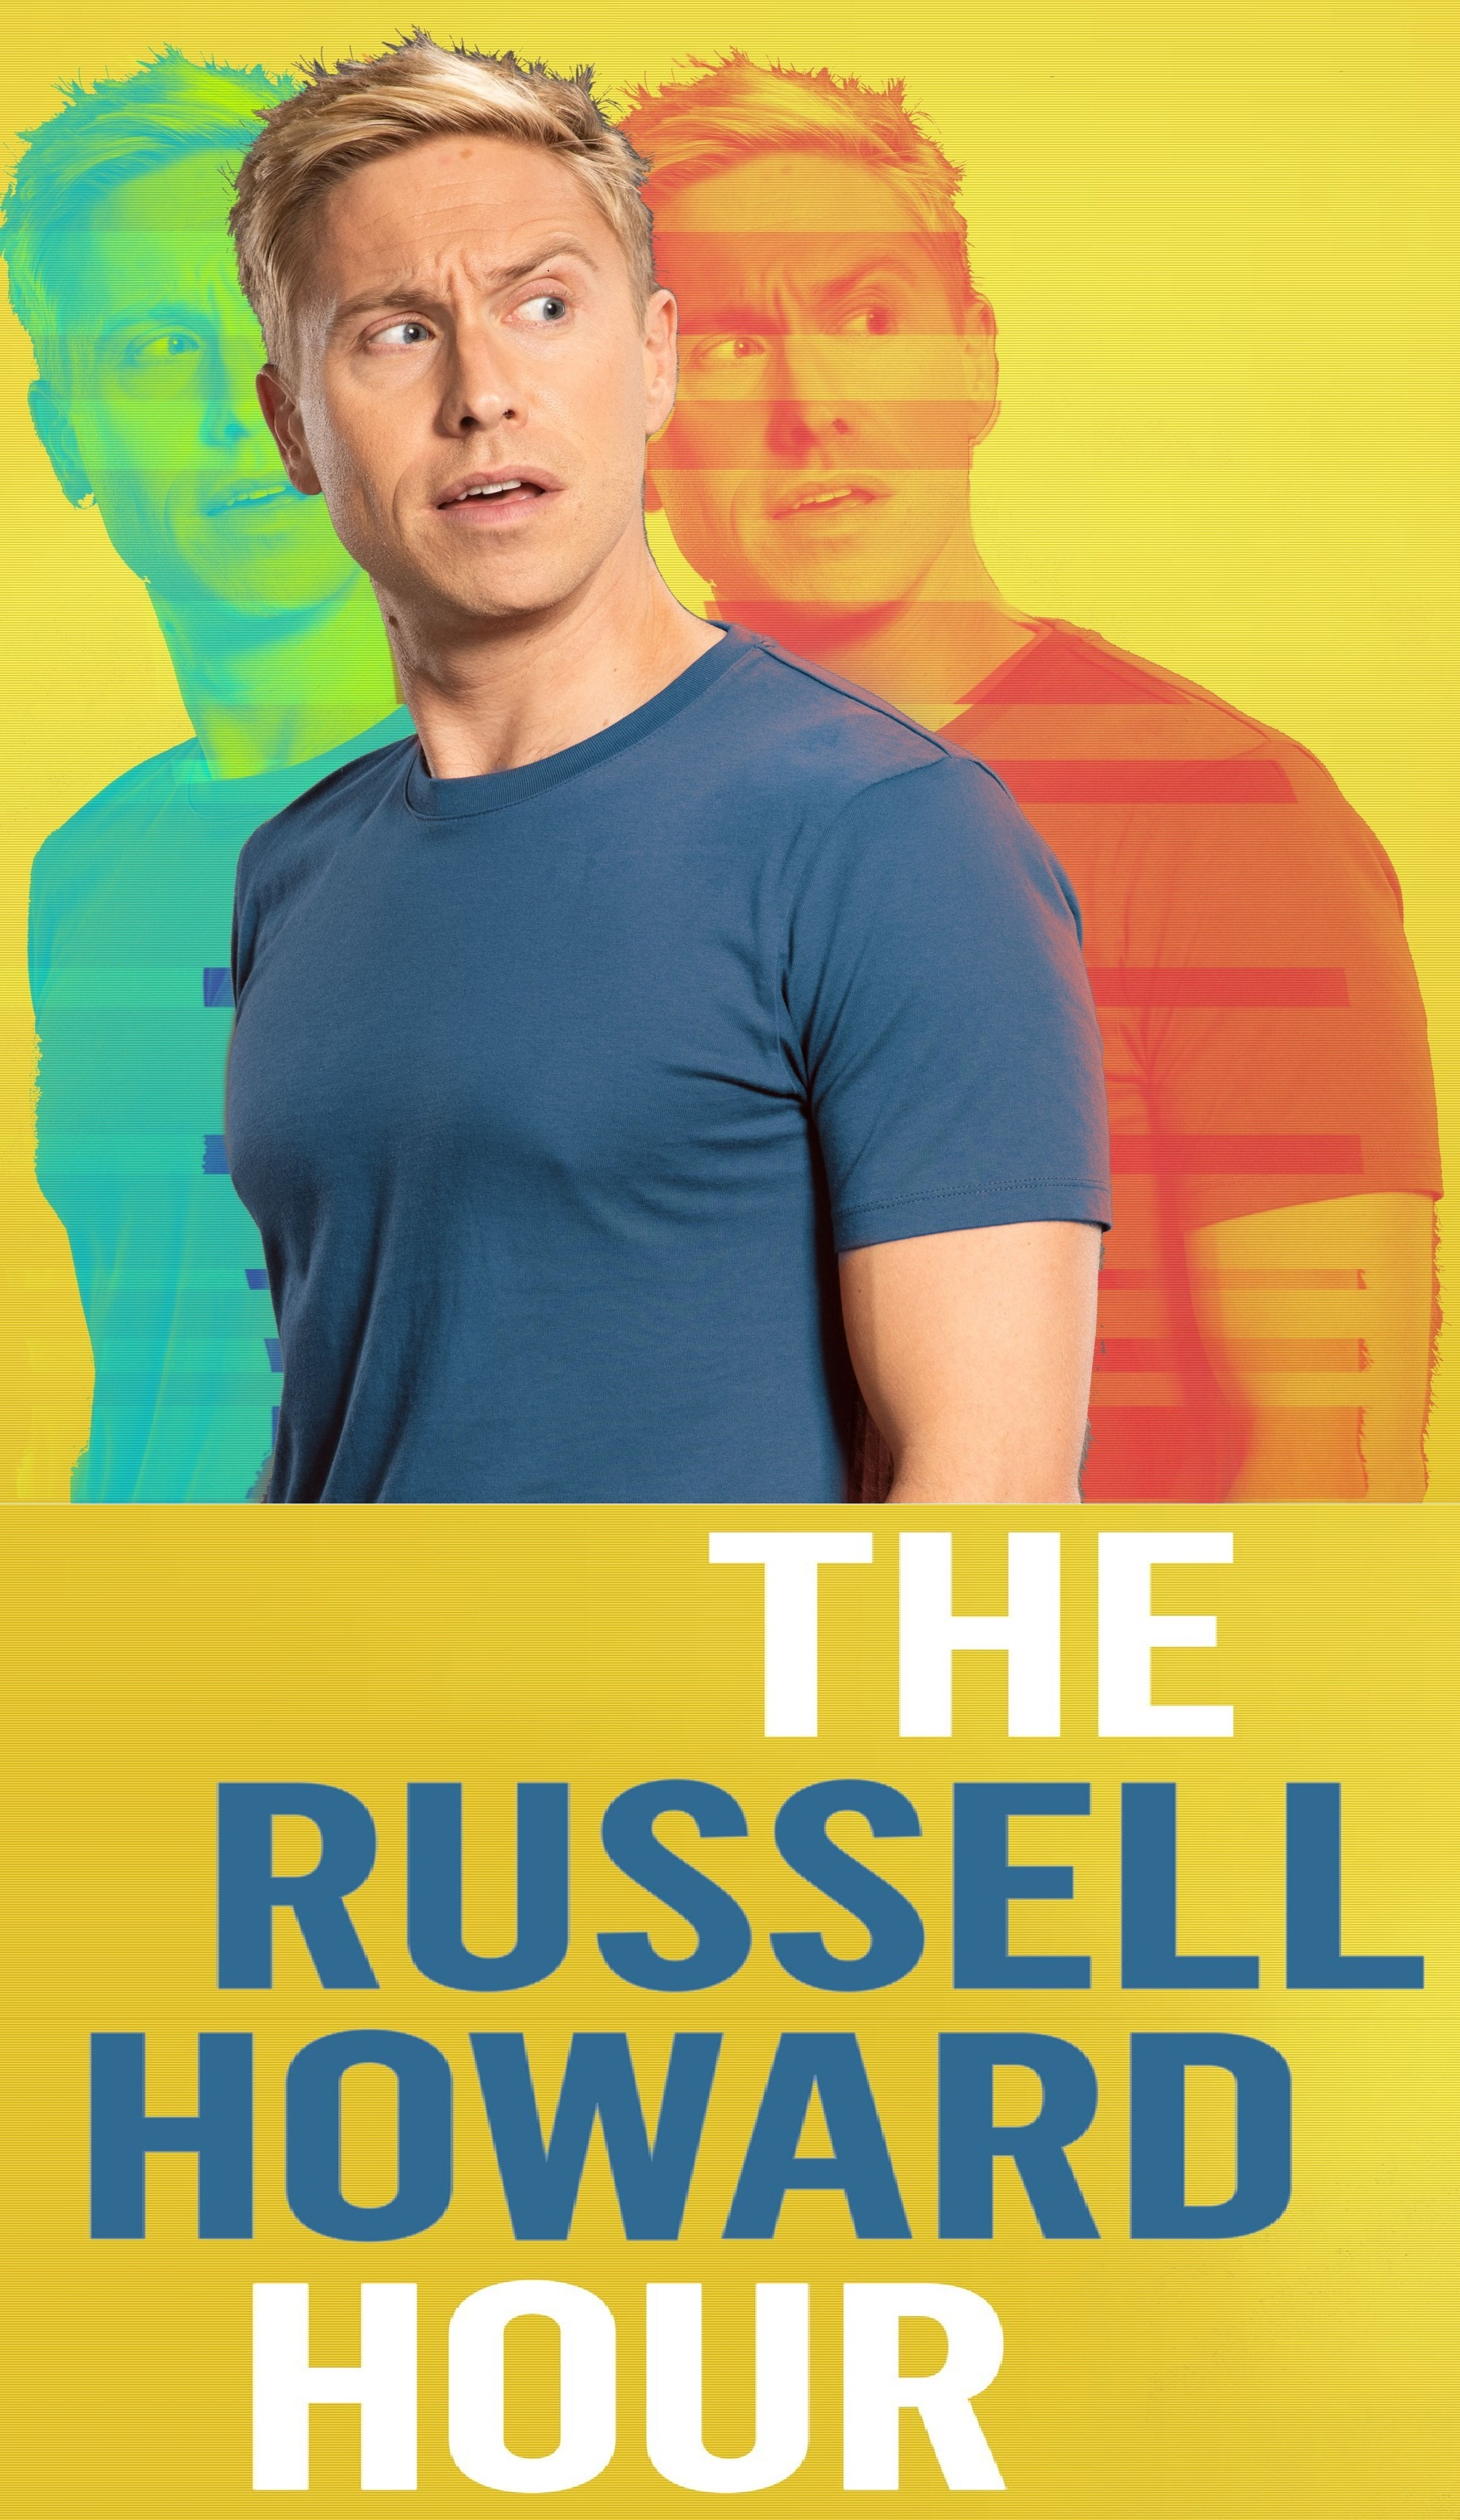 The Russell Howard Hour - Season 4 Episode 3